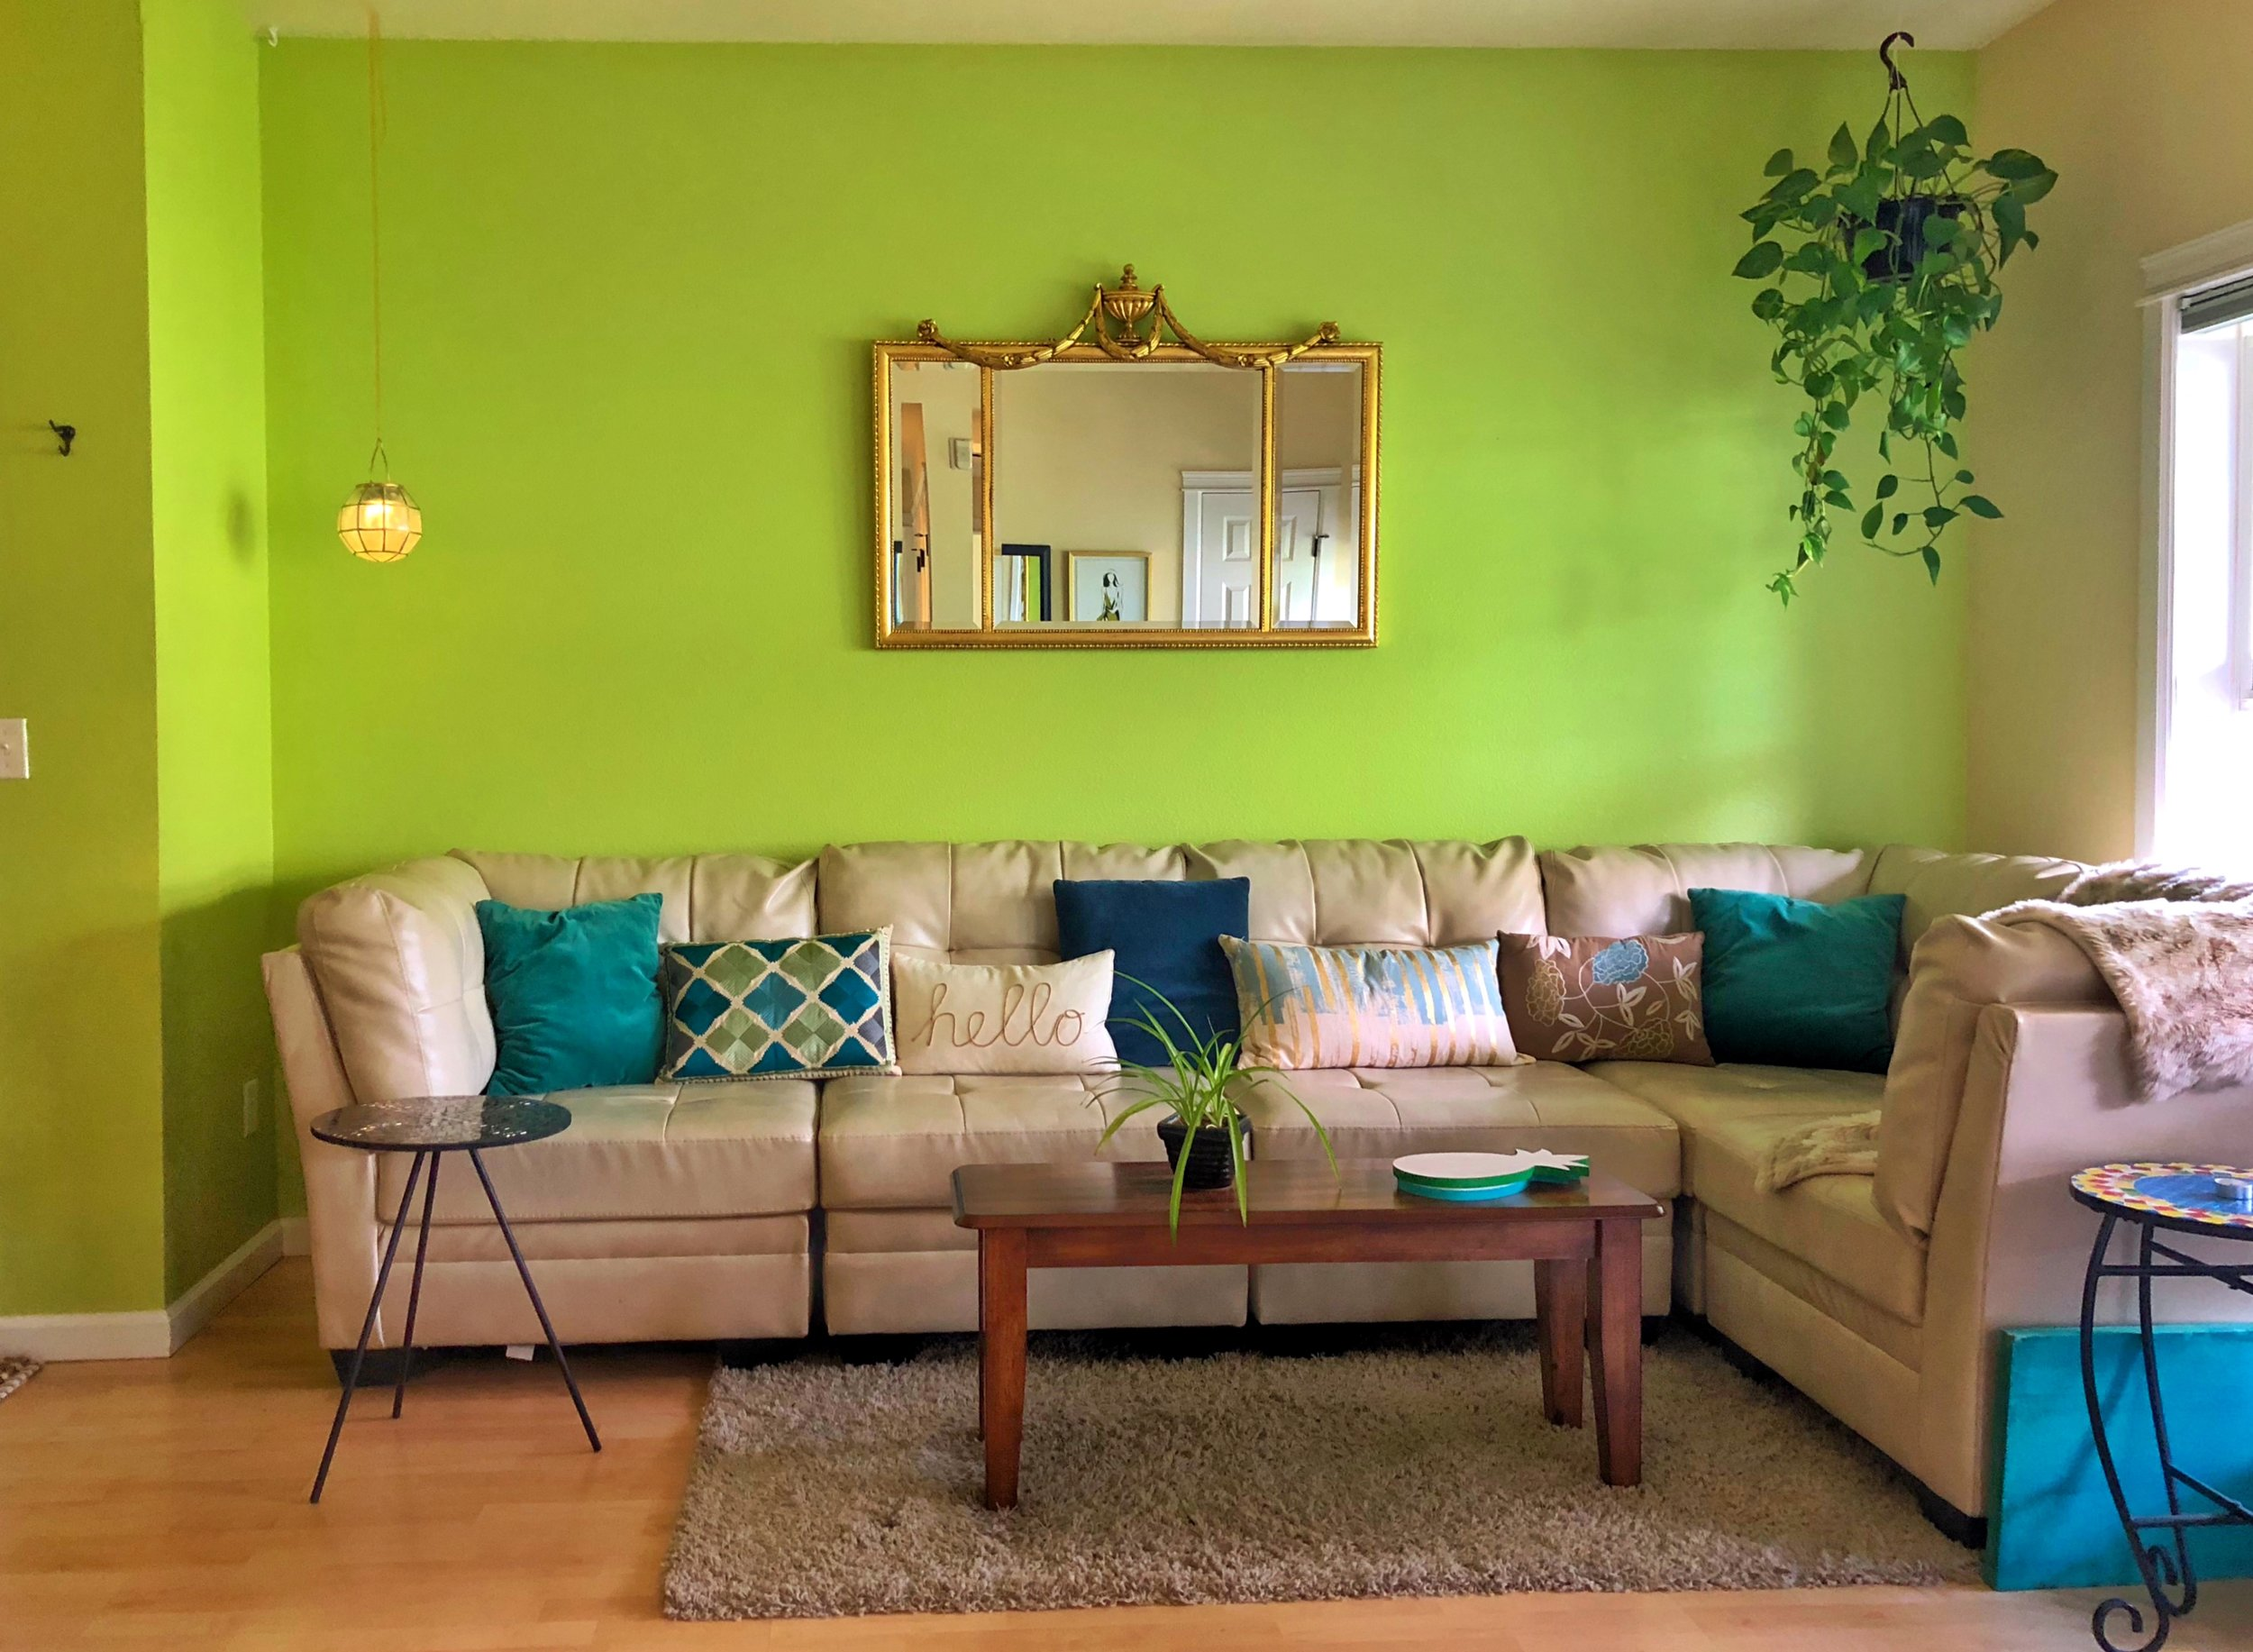 "The living room of one of Amy's listings in Boulder, Colo. She says: ""The natural world is very important to me; I love that my accent wall is a bright yet nature-based shade of green—it reminds me of a young plant, ready to spring to life. I match my pillows and other objects to it, and of course I love hanging real plants nearby to give the feeling of a modern, organic space."""